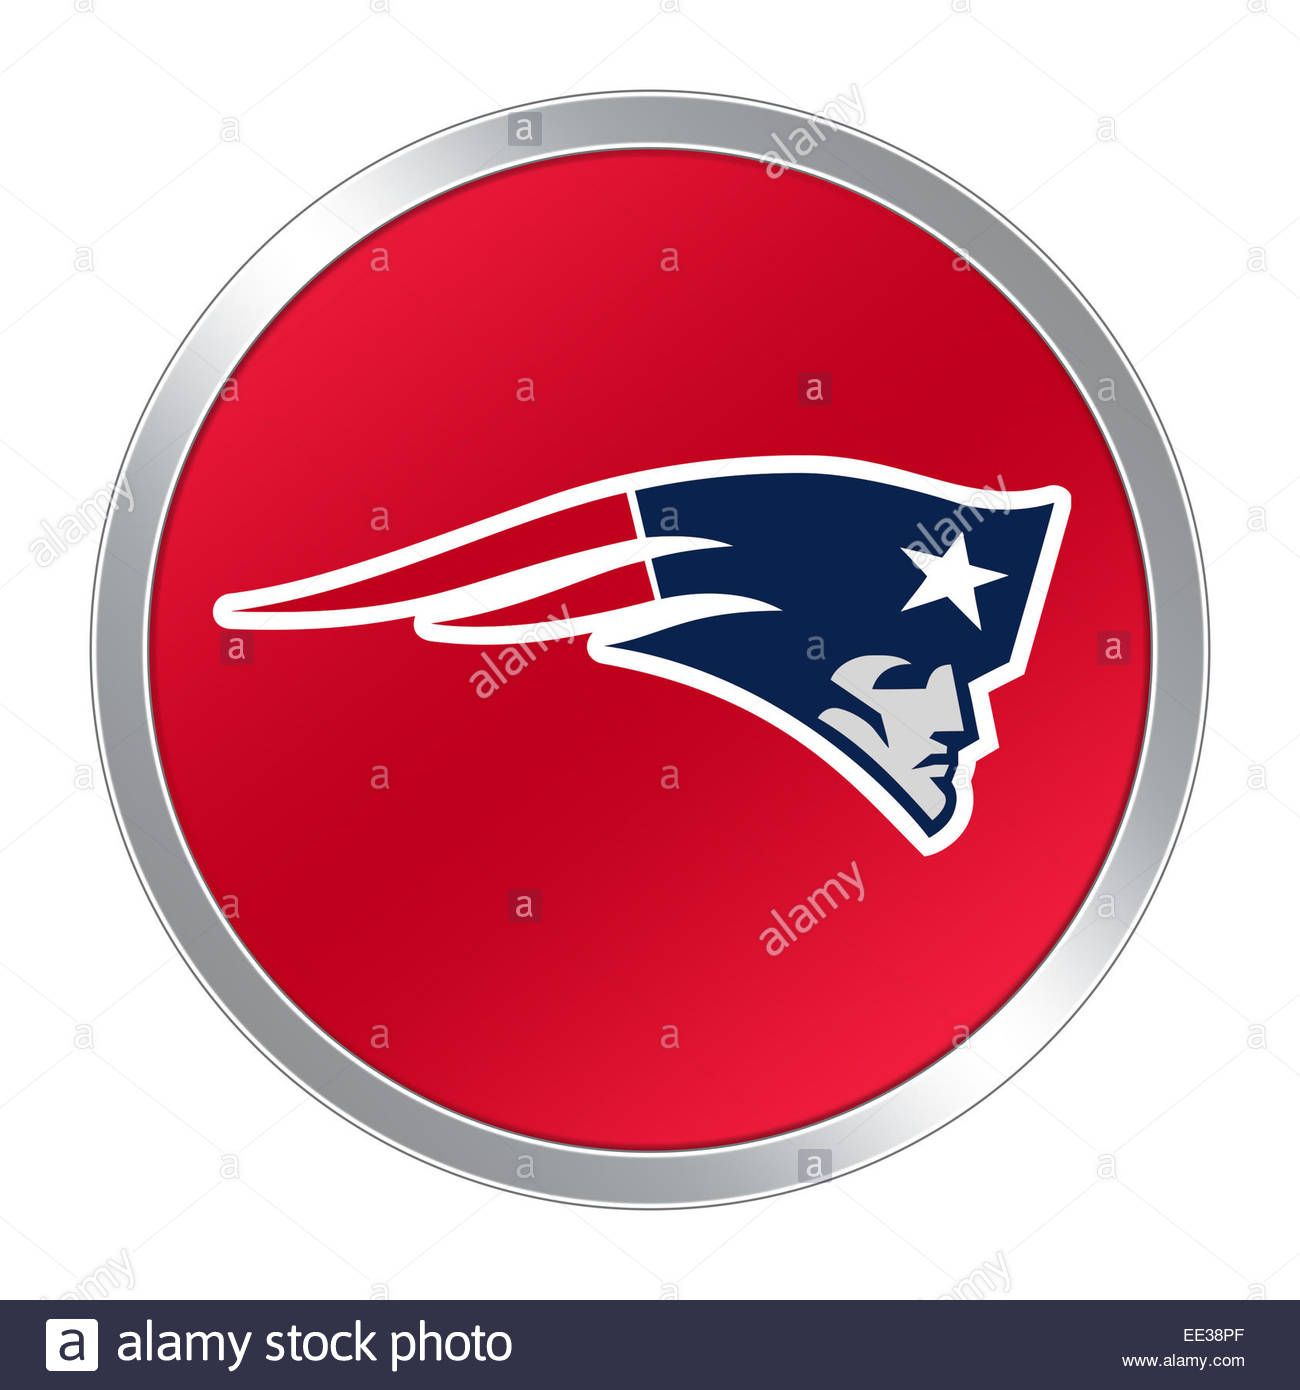 Download This Stock Image New England Patriots Logo Icon Button Ee38pf From Alamy S Library Of M New England Patriots Logo New England Patriots Stock Photos